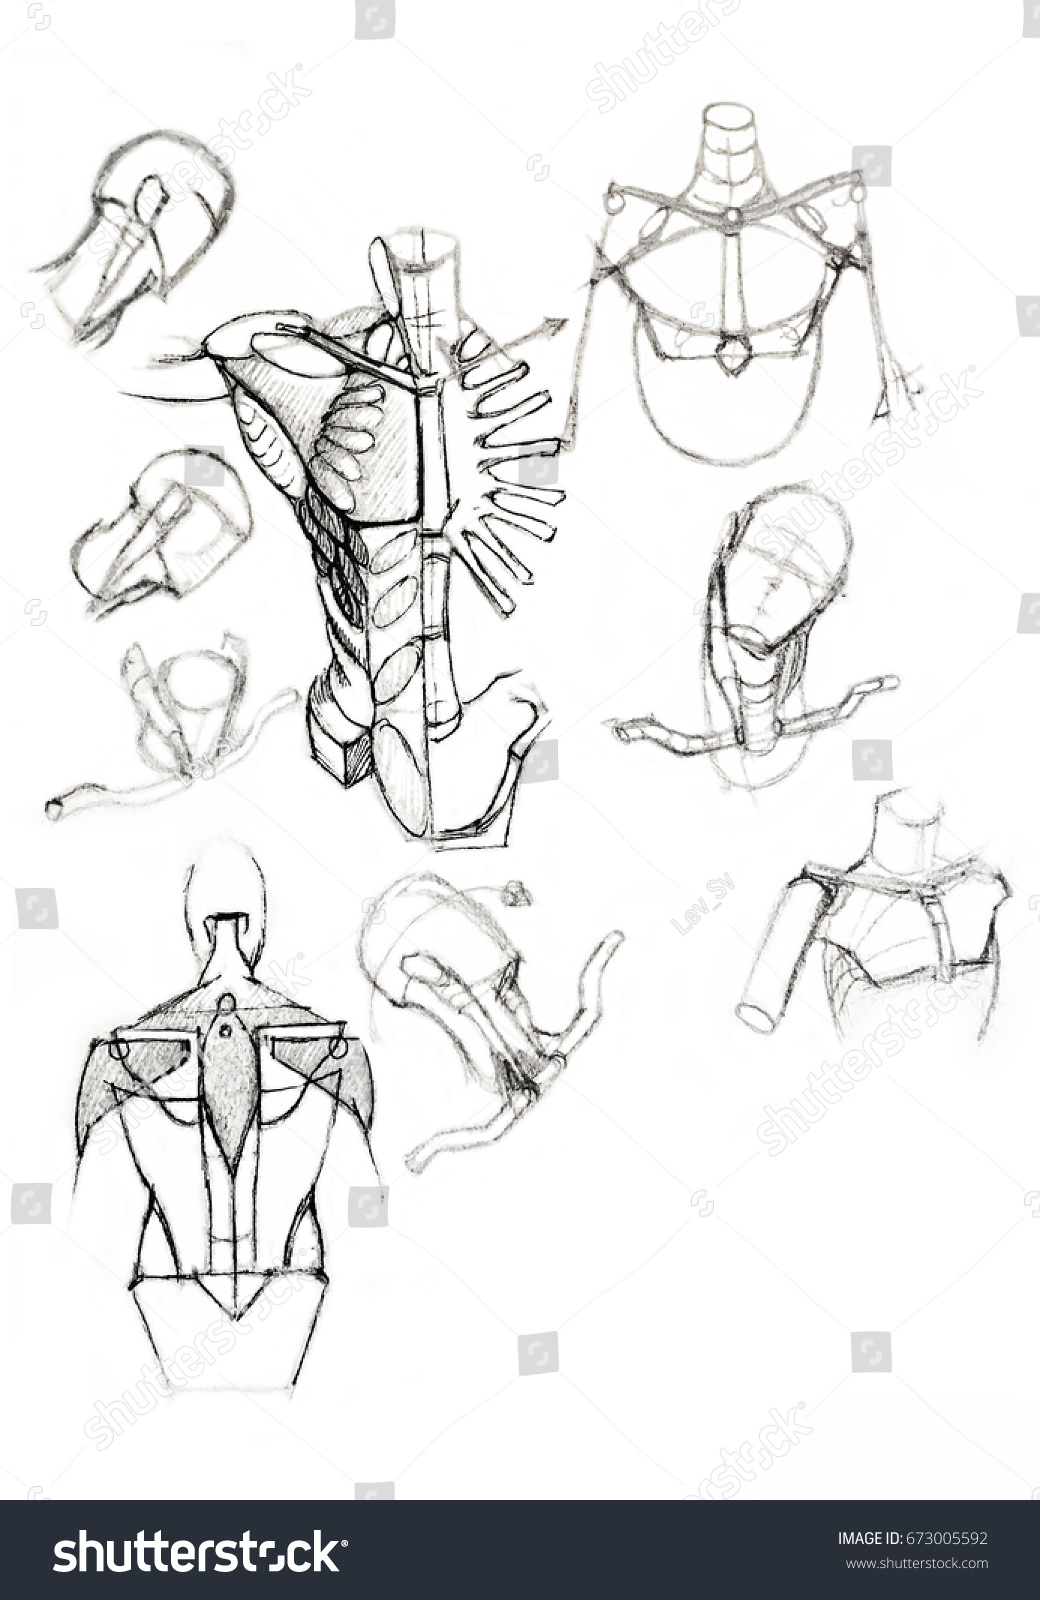 Sketch Human Anatomy Drawing Soft Pencil Stock Illustration